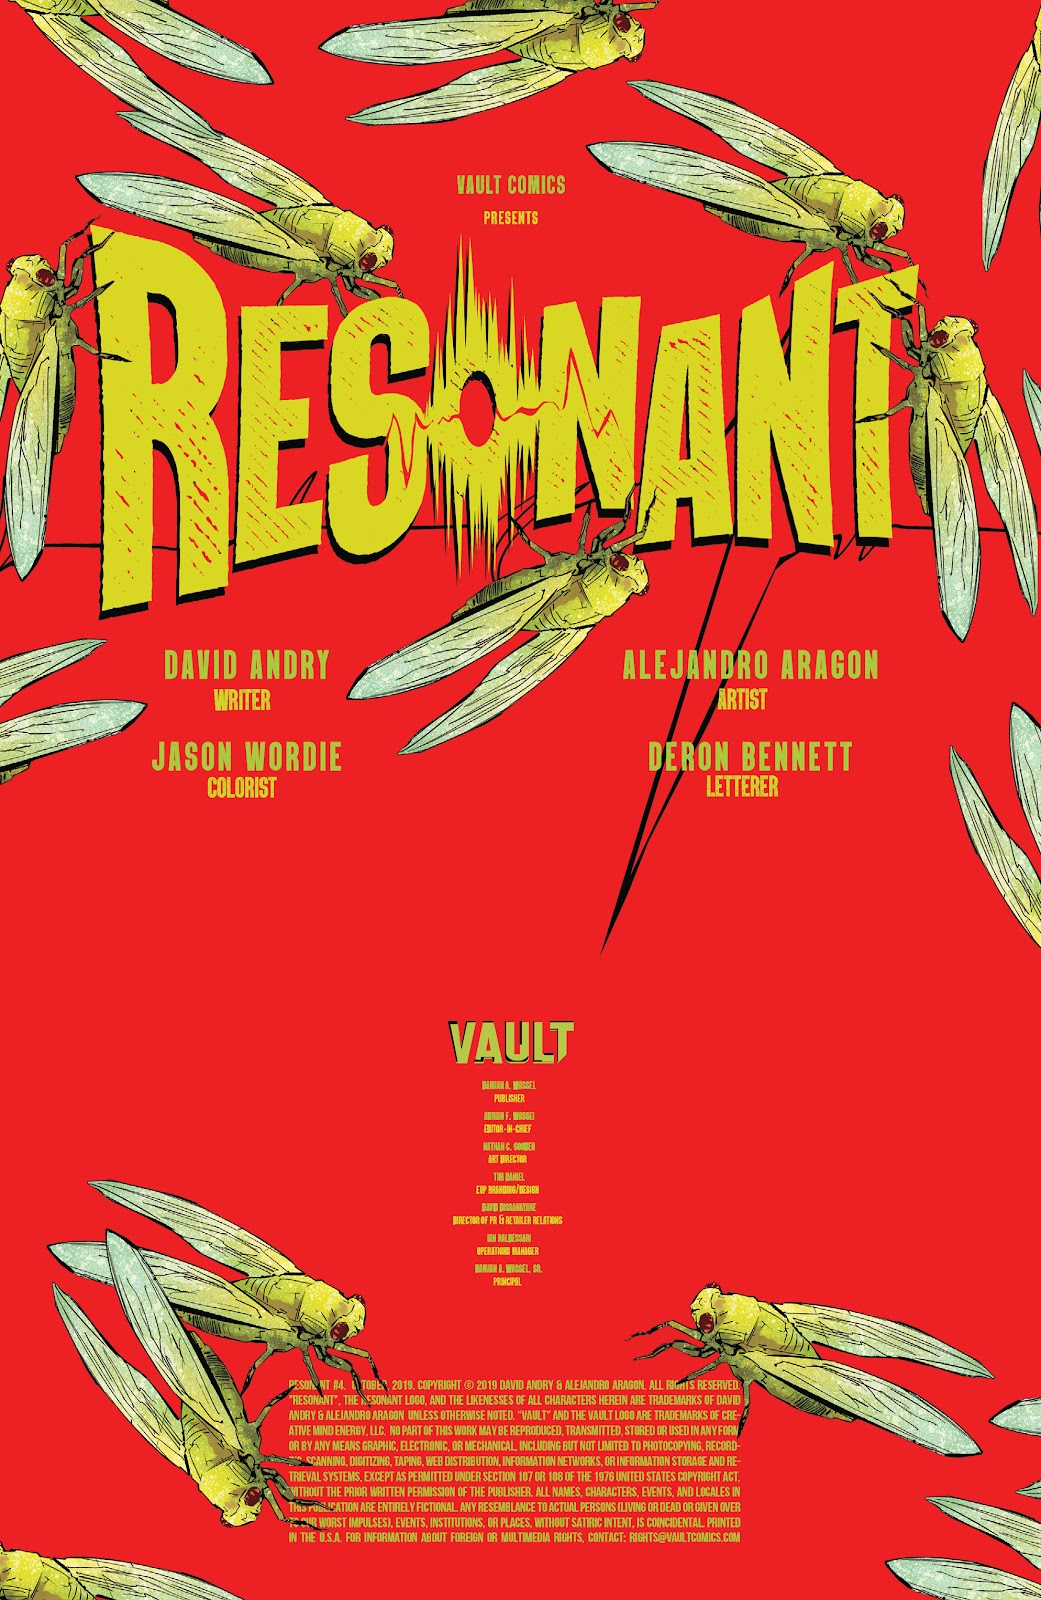 Read online Resonant comic -  Issue #4 - 2